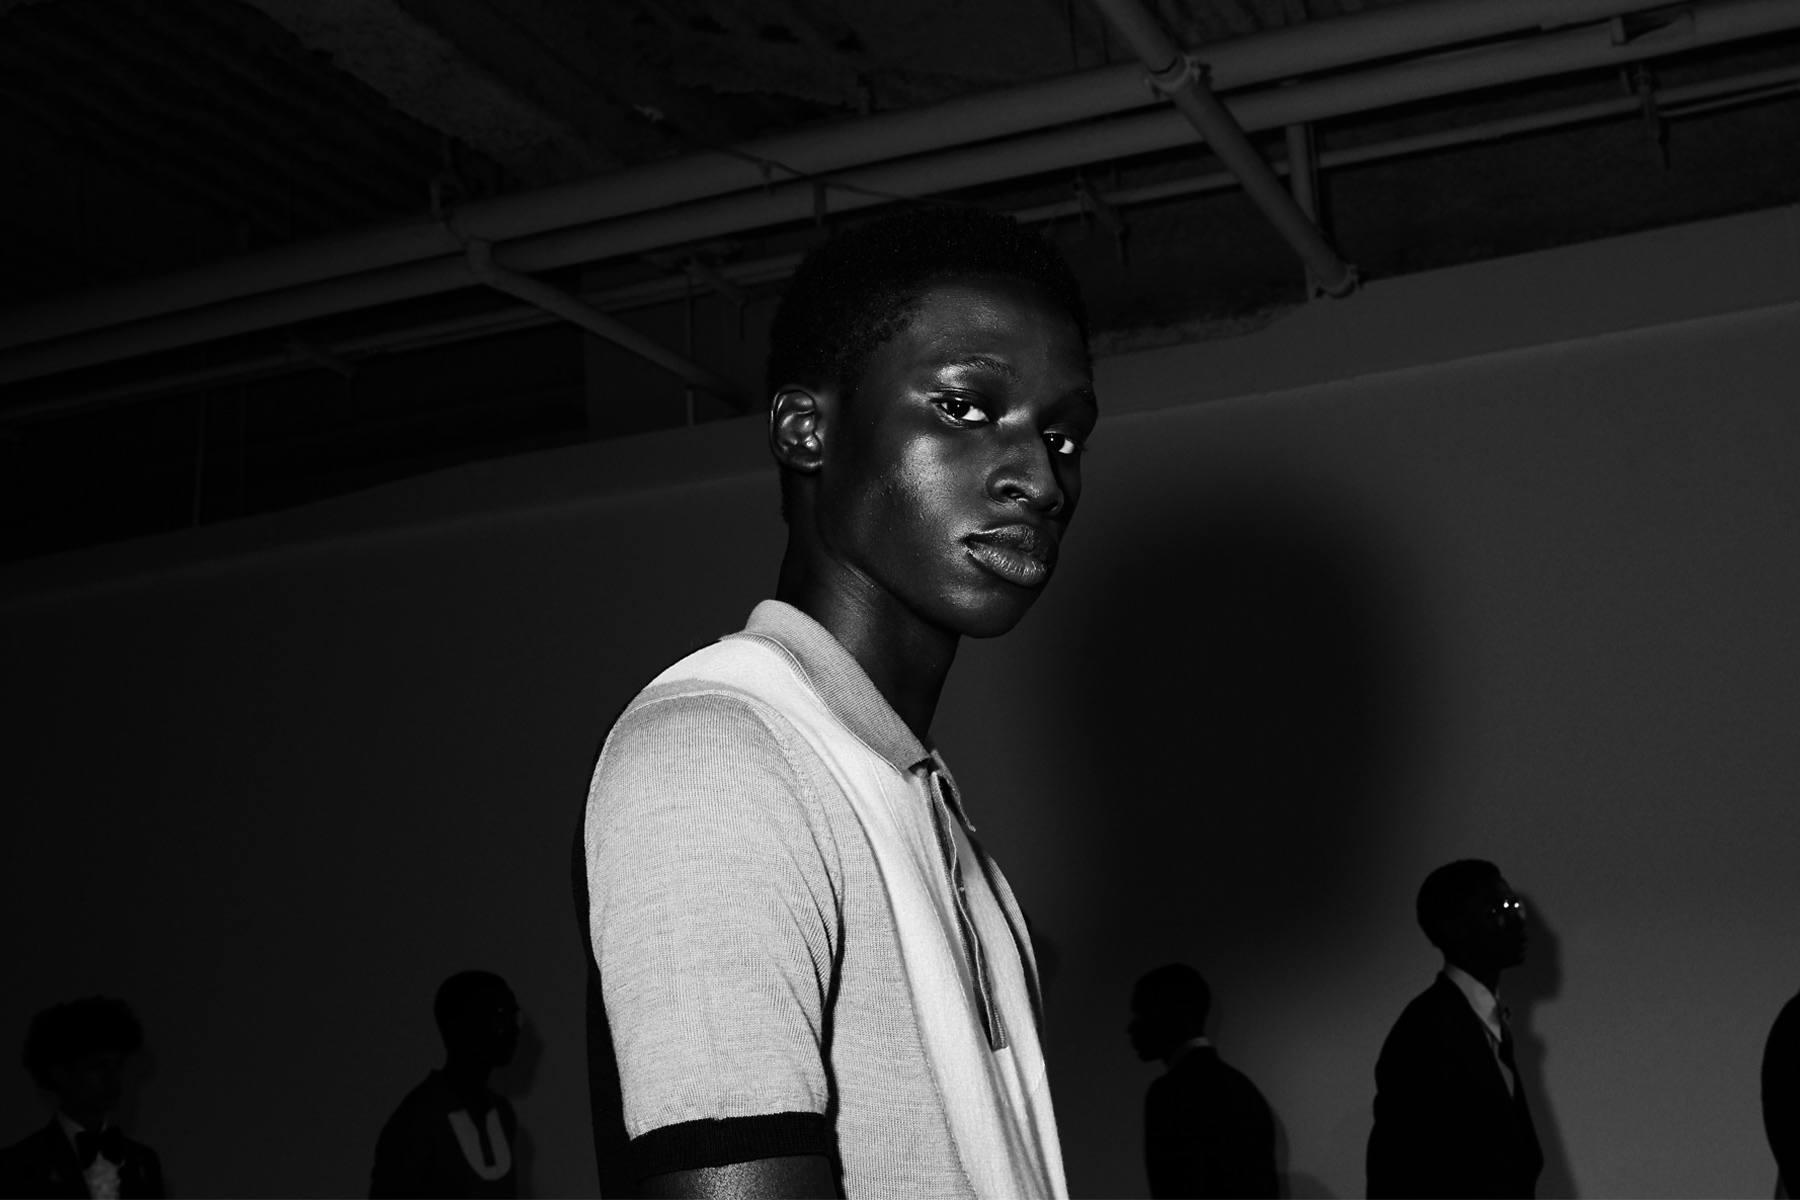 Model Baba Diop at David Hart for Spring/Summer 2019.